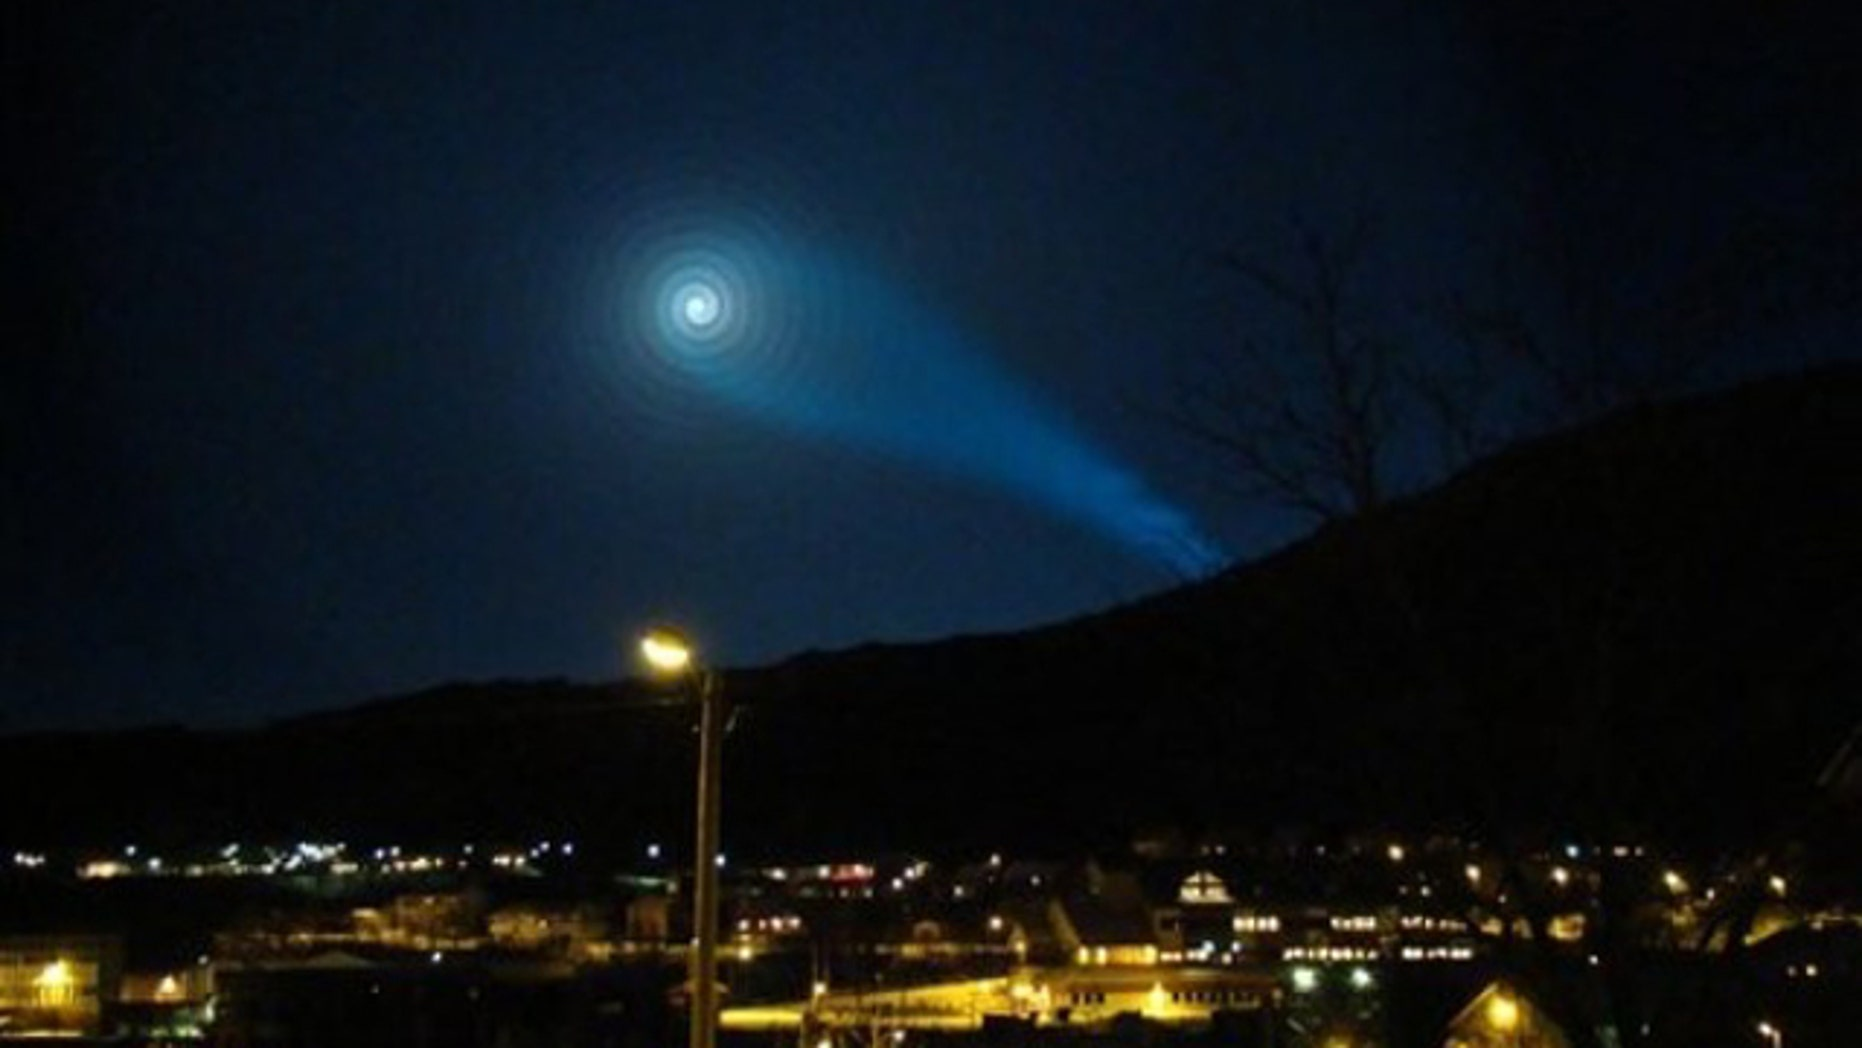 A strange light lit up the night sky above Norway Dec. 9, 2009, prompting UFO talk. The Russian army later explained that the light was caused by a failure of the Bulava intercontinental missile, which was being tested across the Norwegian-Russian border.